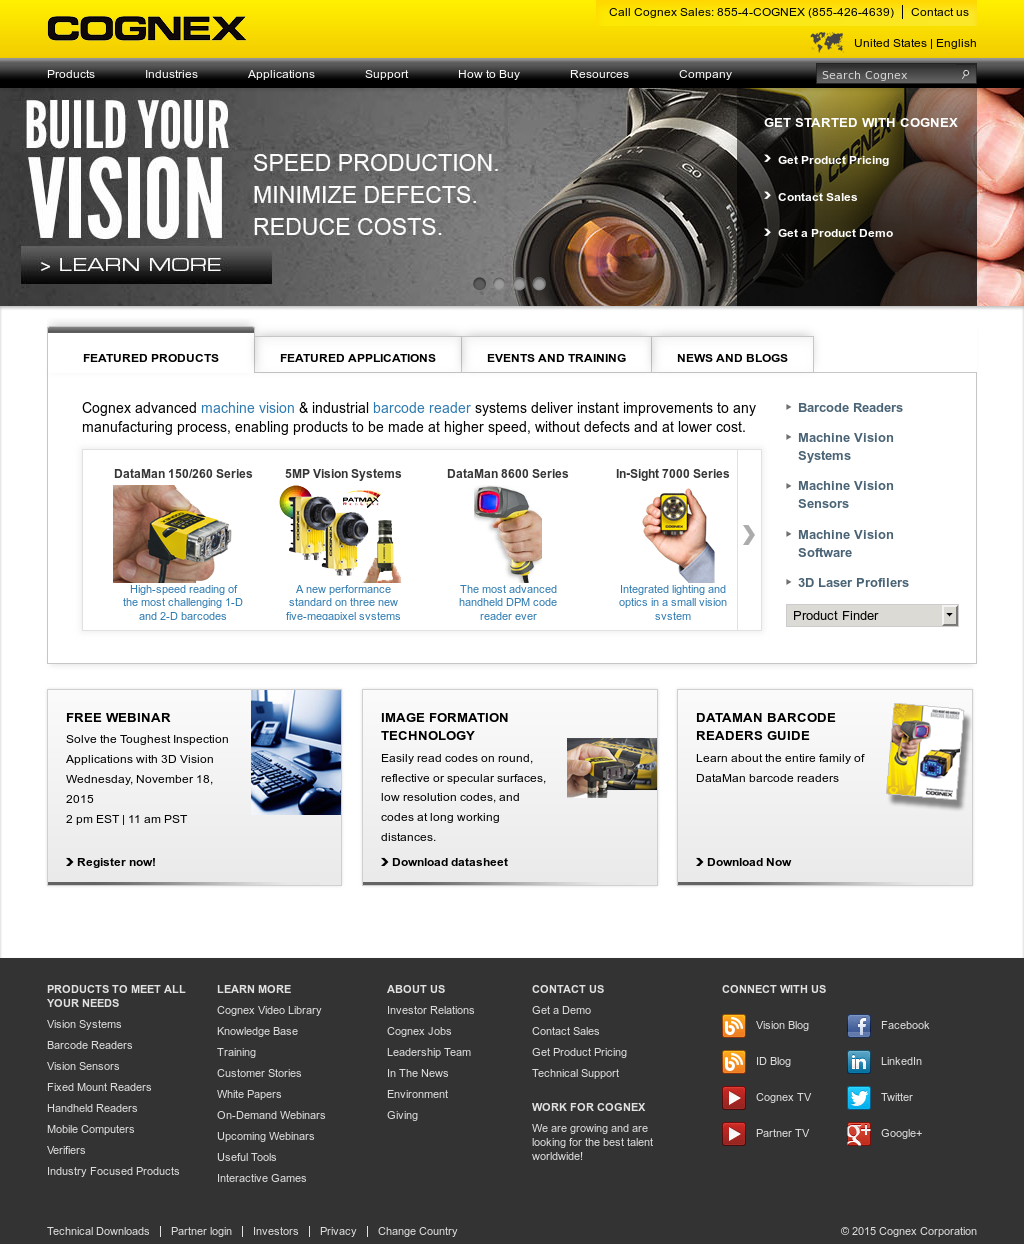 Cognex Competitors, Revenue and Employees - Owler Company